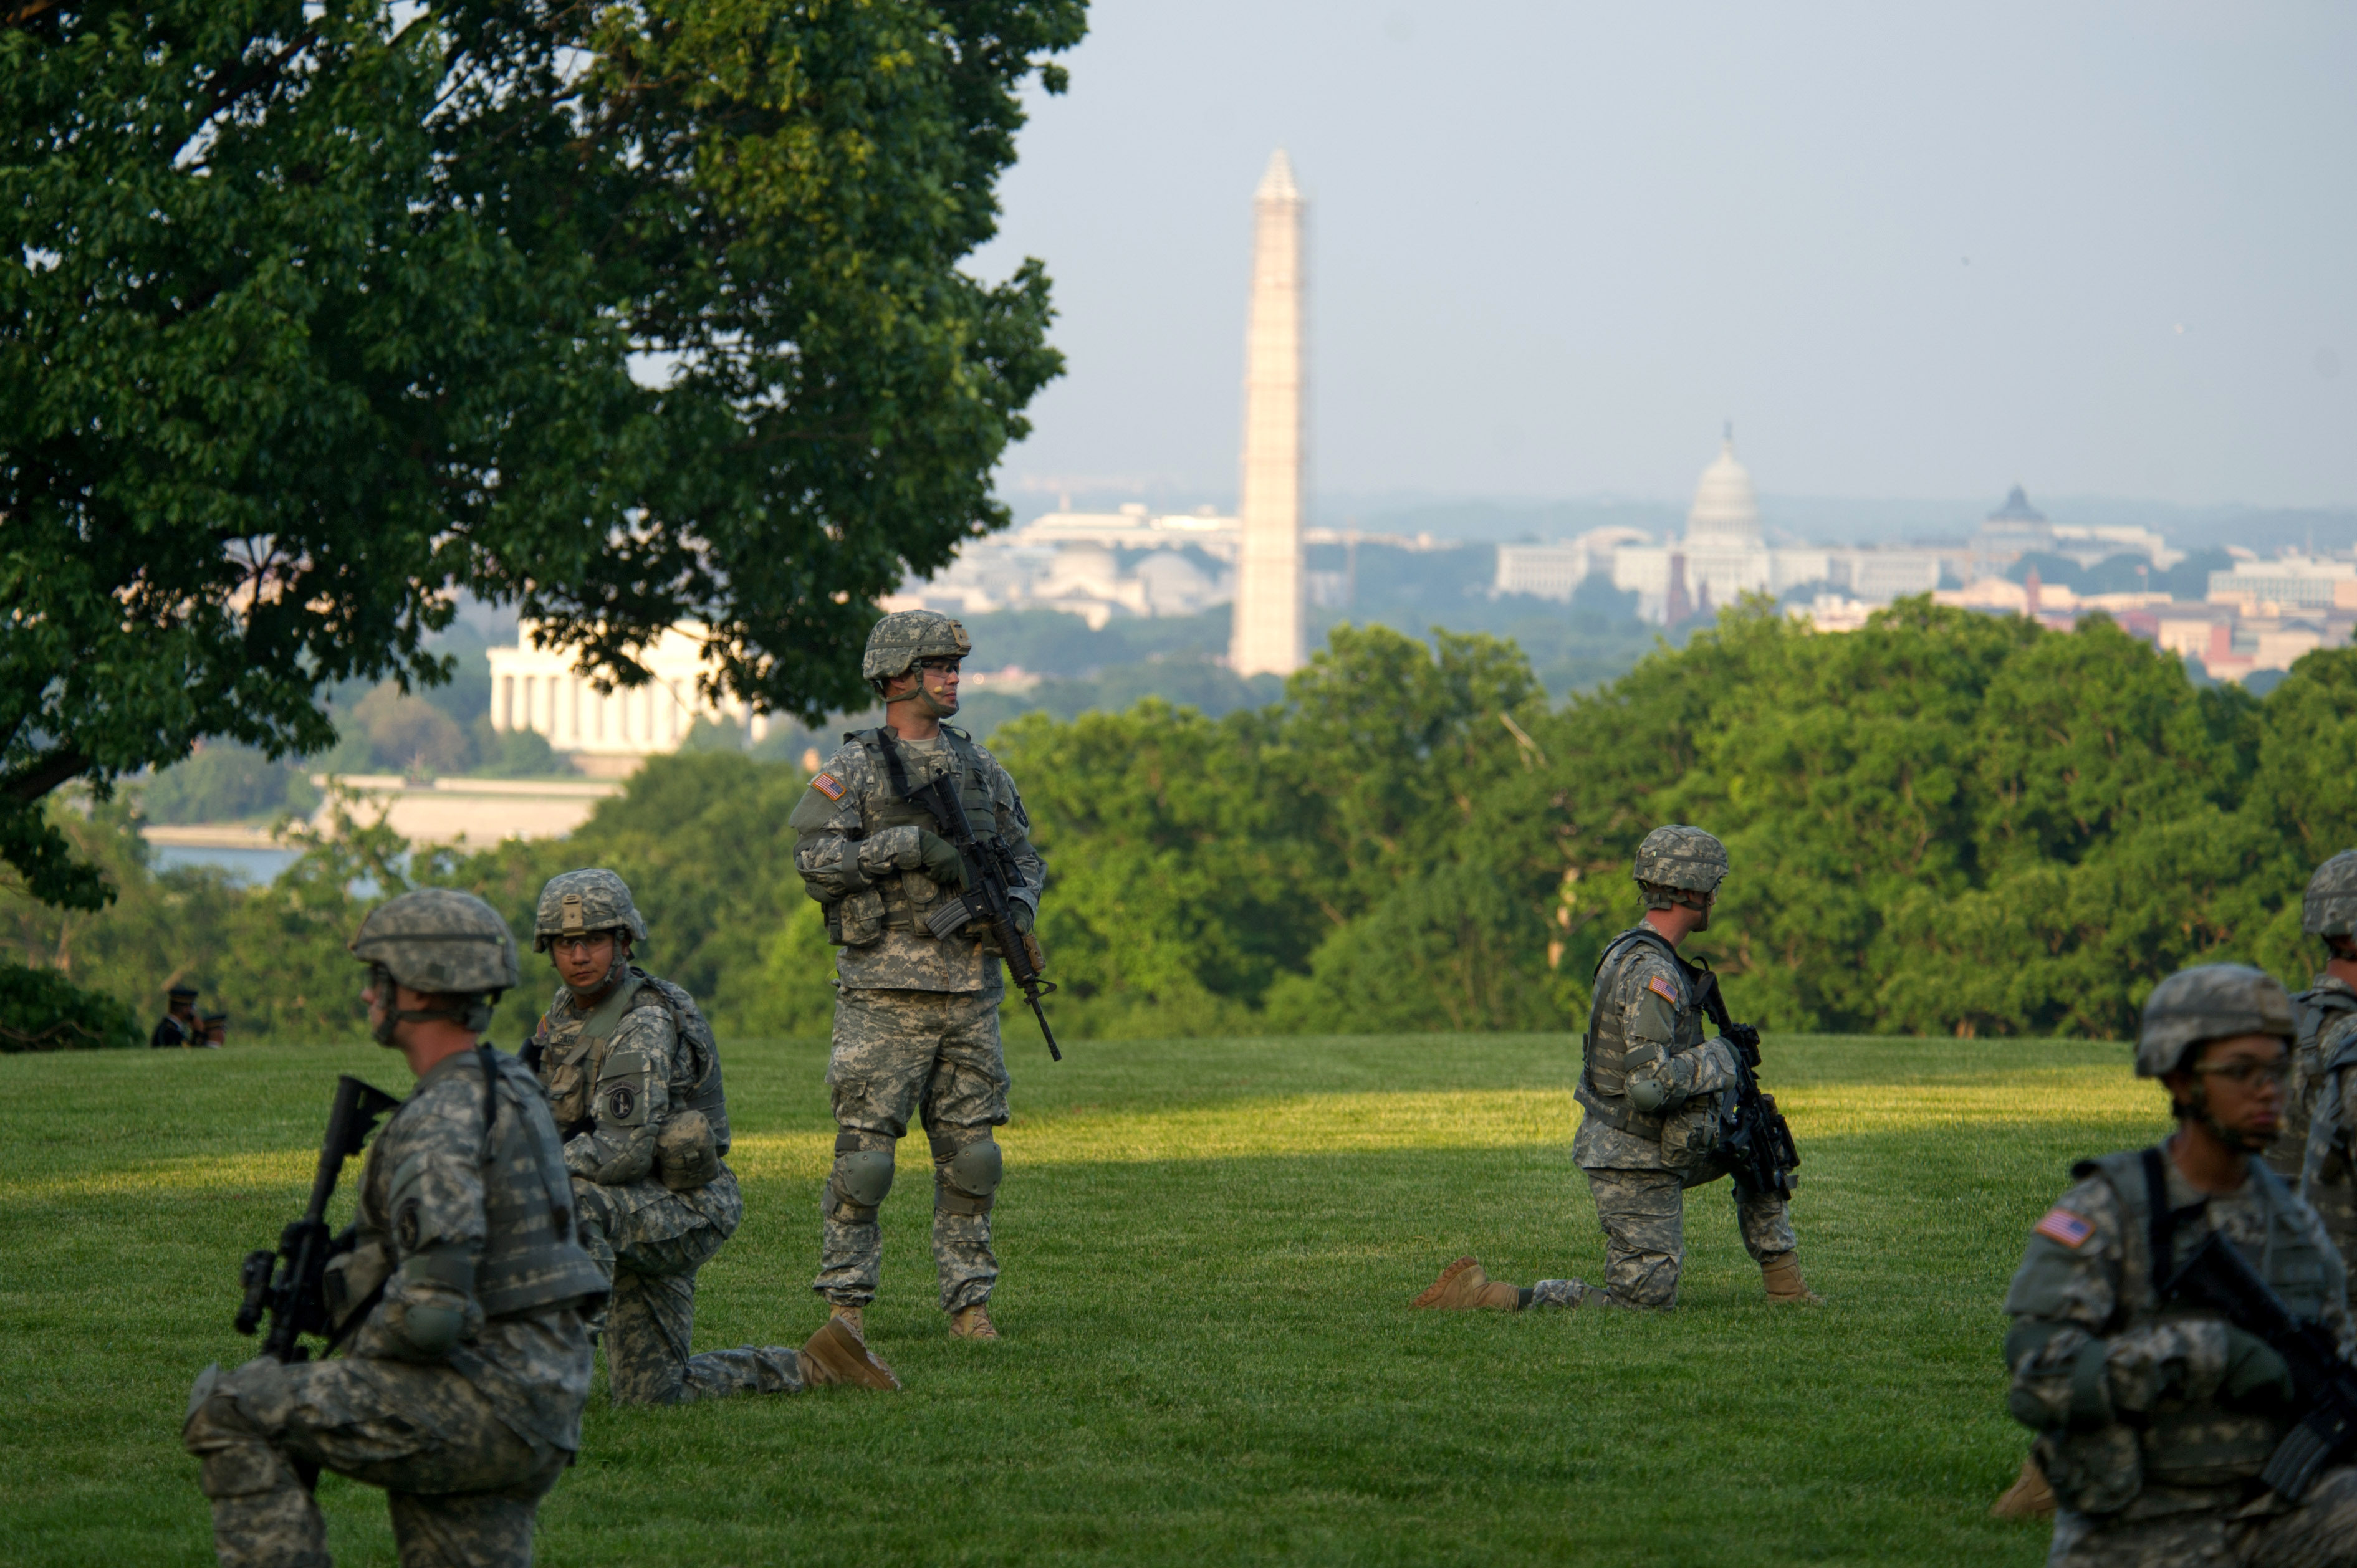 US Army soldiers at Joint Base Myer-Henderson Hall, Virginia overlooking Washington, D.C.